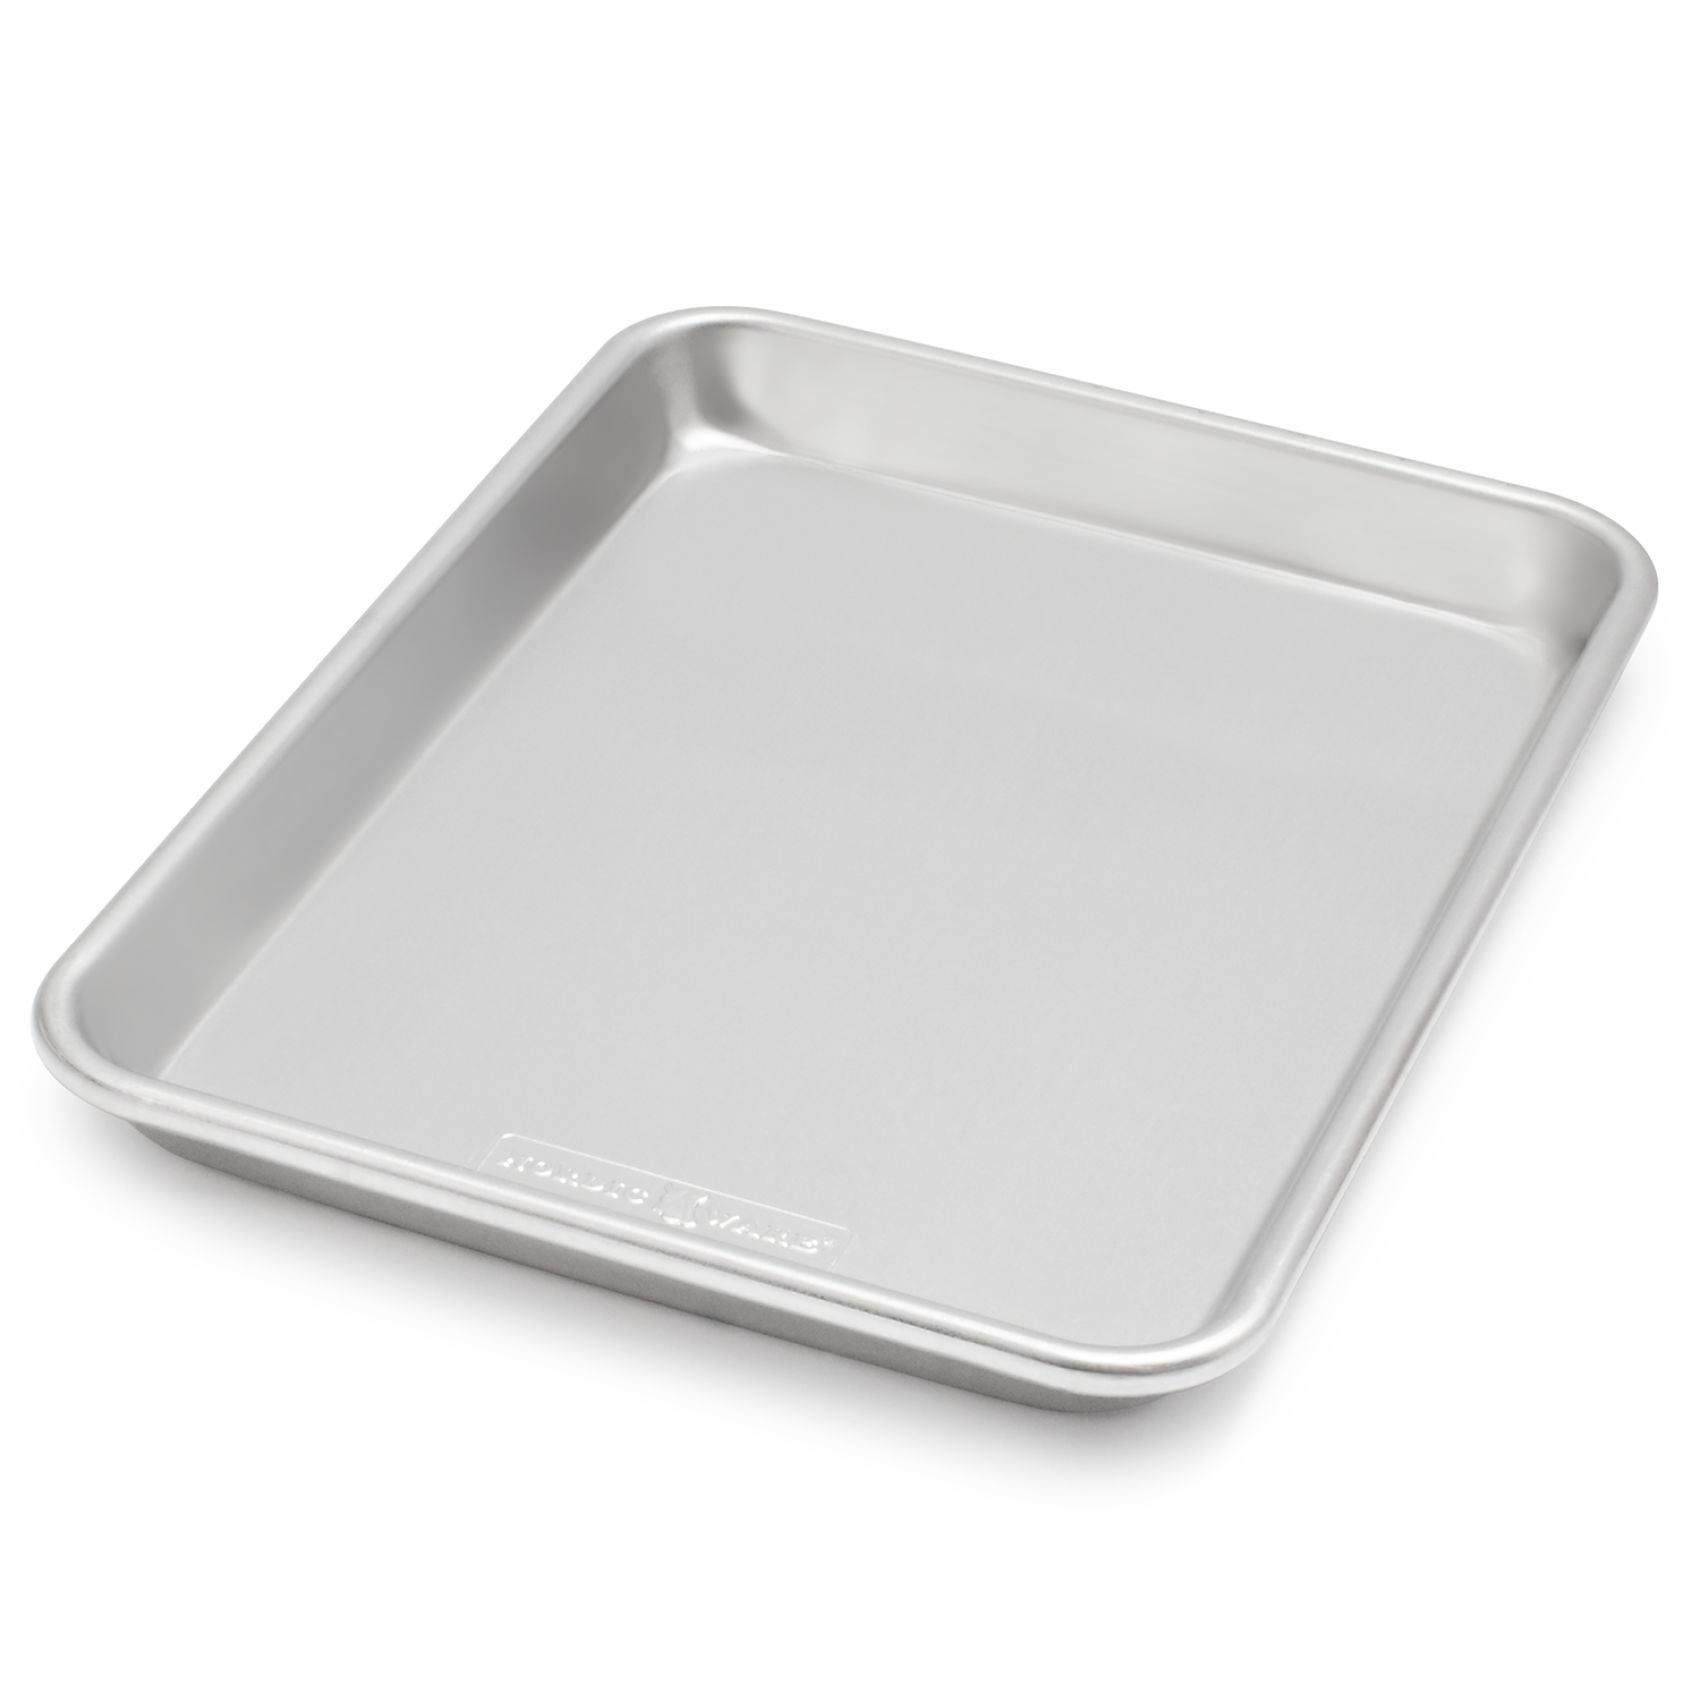 quarter-sheet-pan